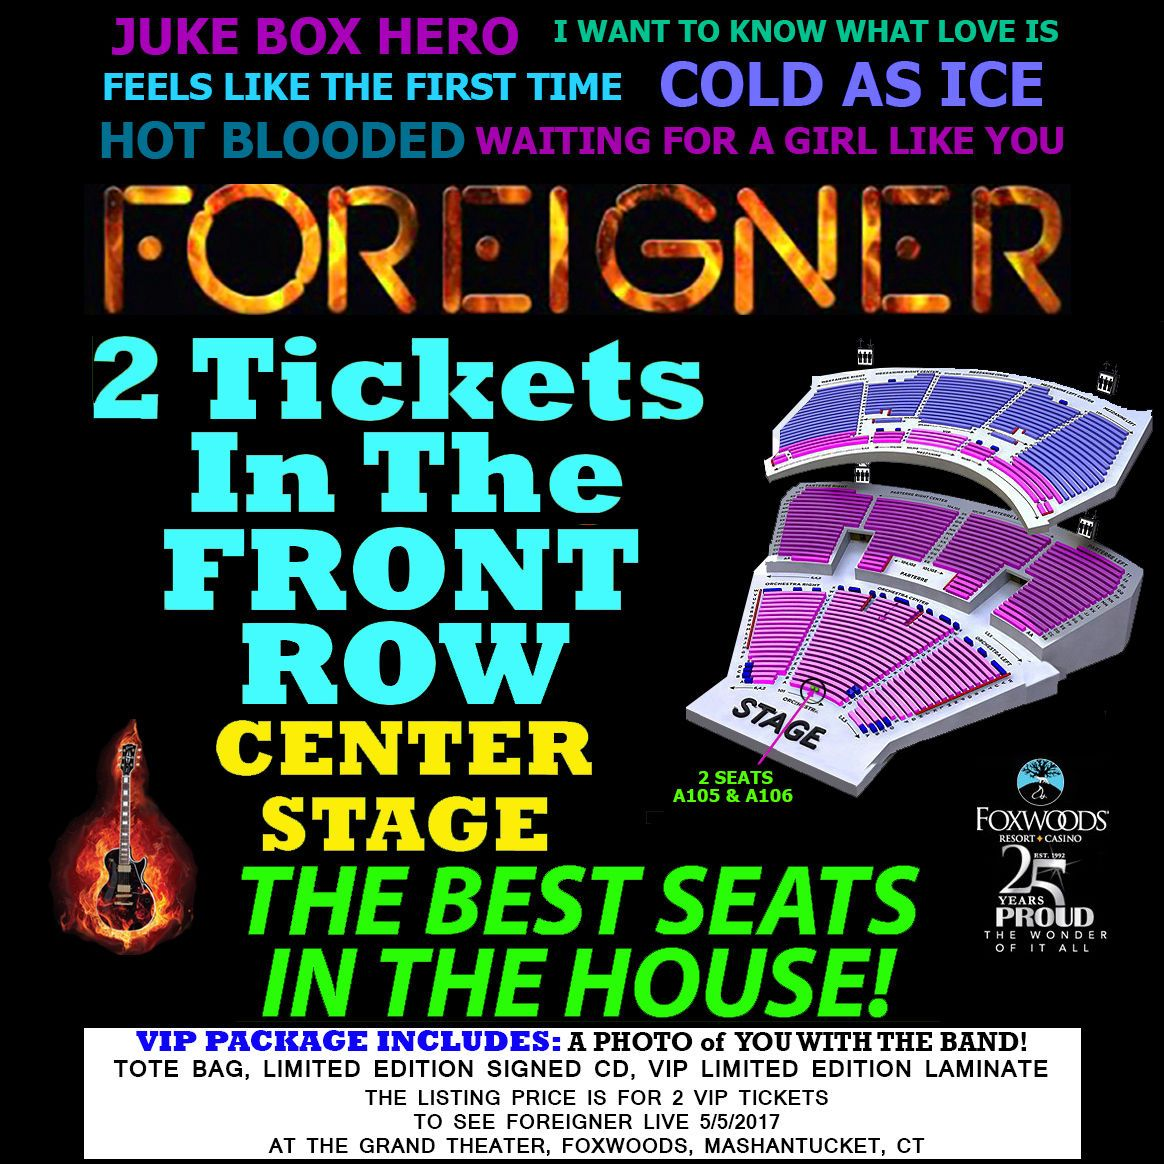 Tickets foreigner front row a center stage 2 vip tickets grand tickets foreigner front row a center stage 2 vip tickets grand theater foxwoods 5 kristyandbryce Image collections